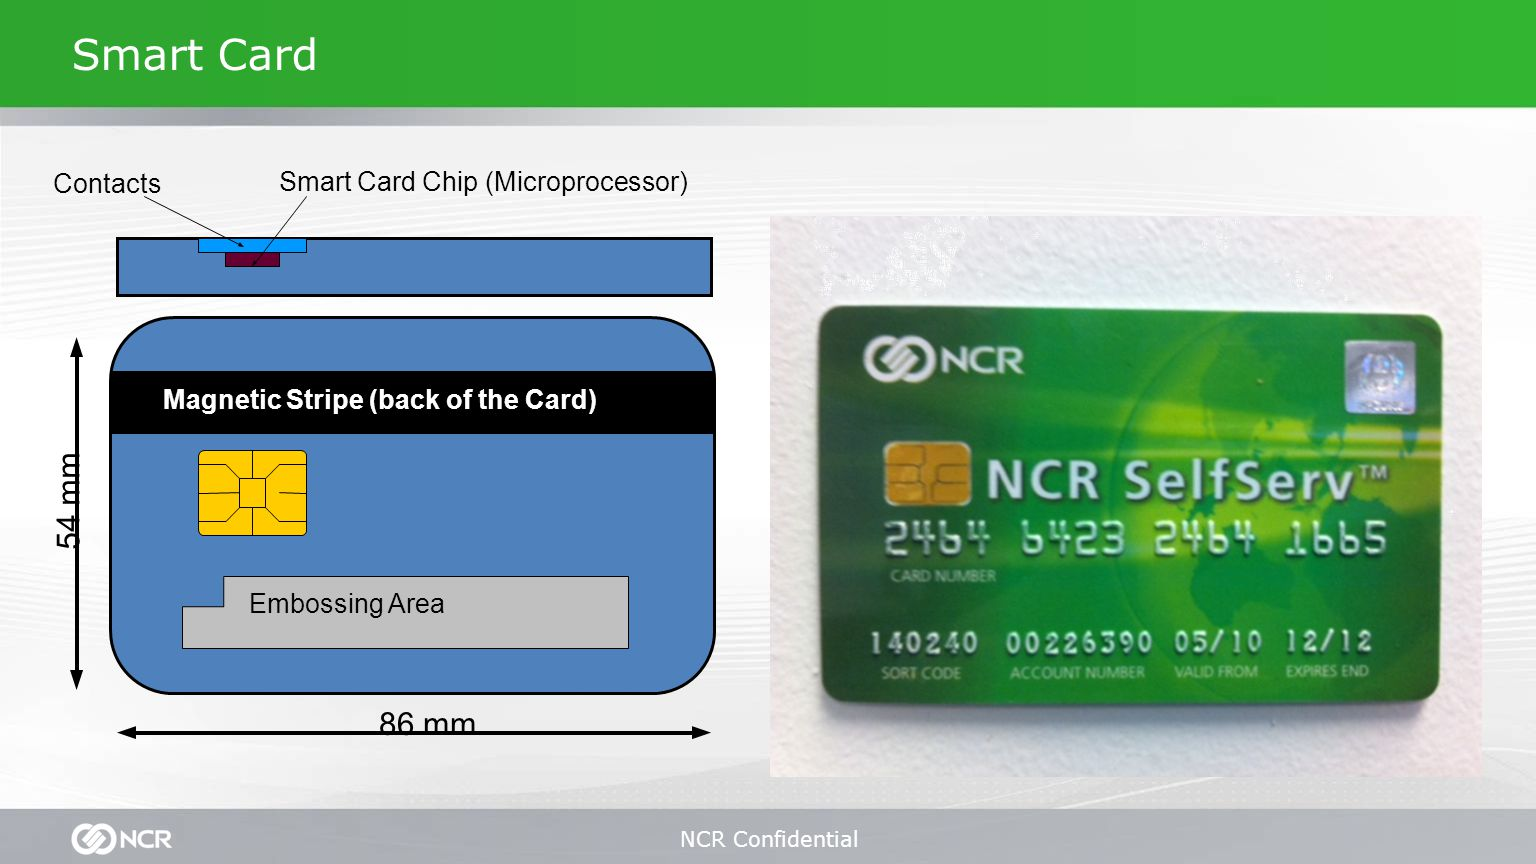 NCR Confidential Smart Card Embossing Area 54 mm 86 mm Magnetic Stripe (back of the Card) Smart Card Chip (Microprocessor) Contacts